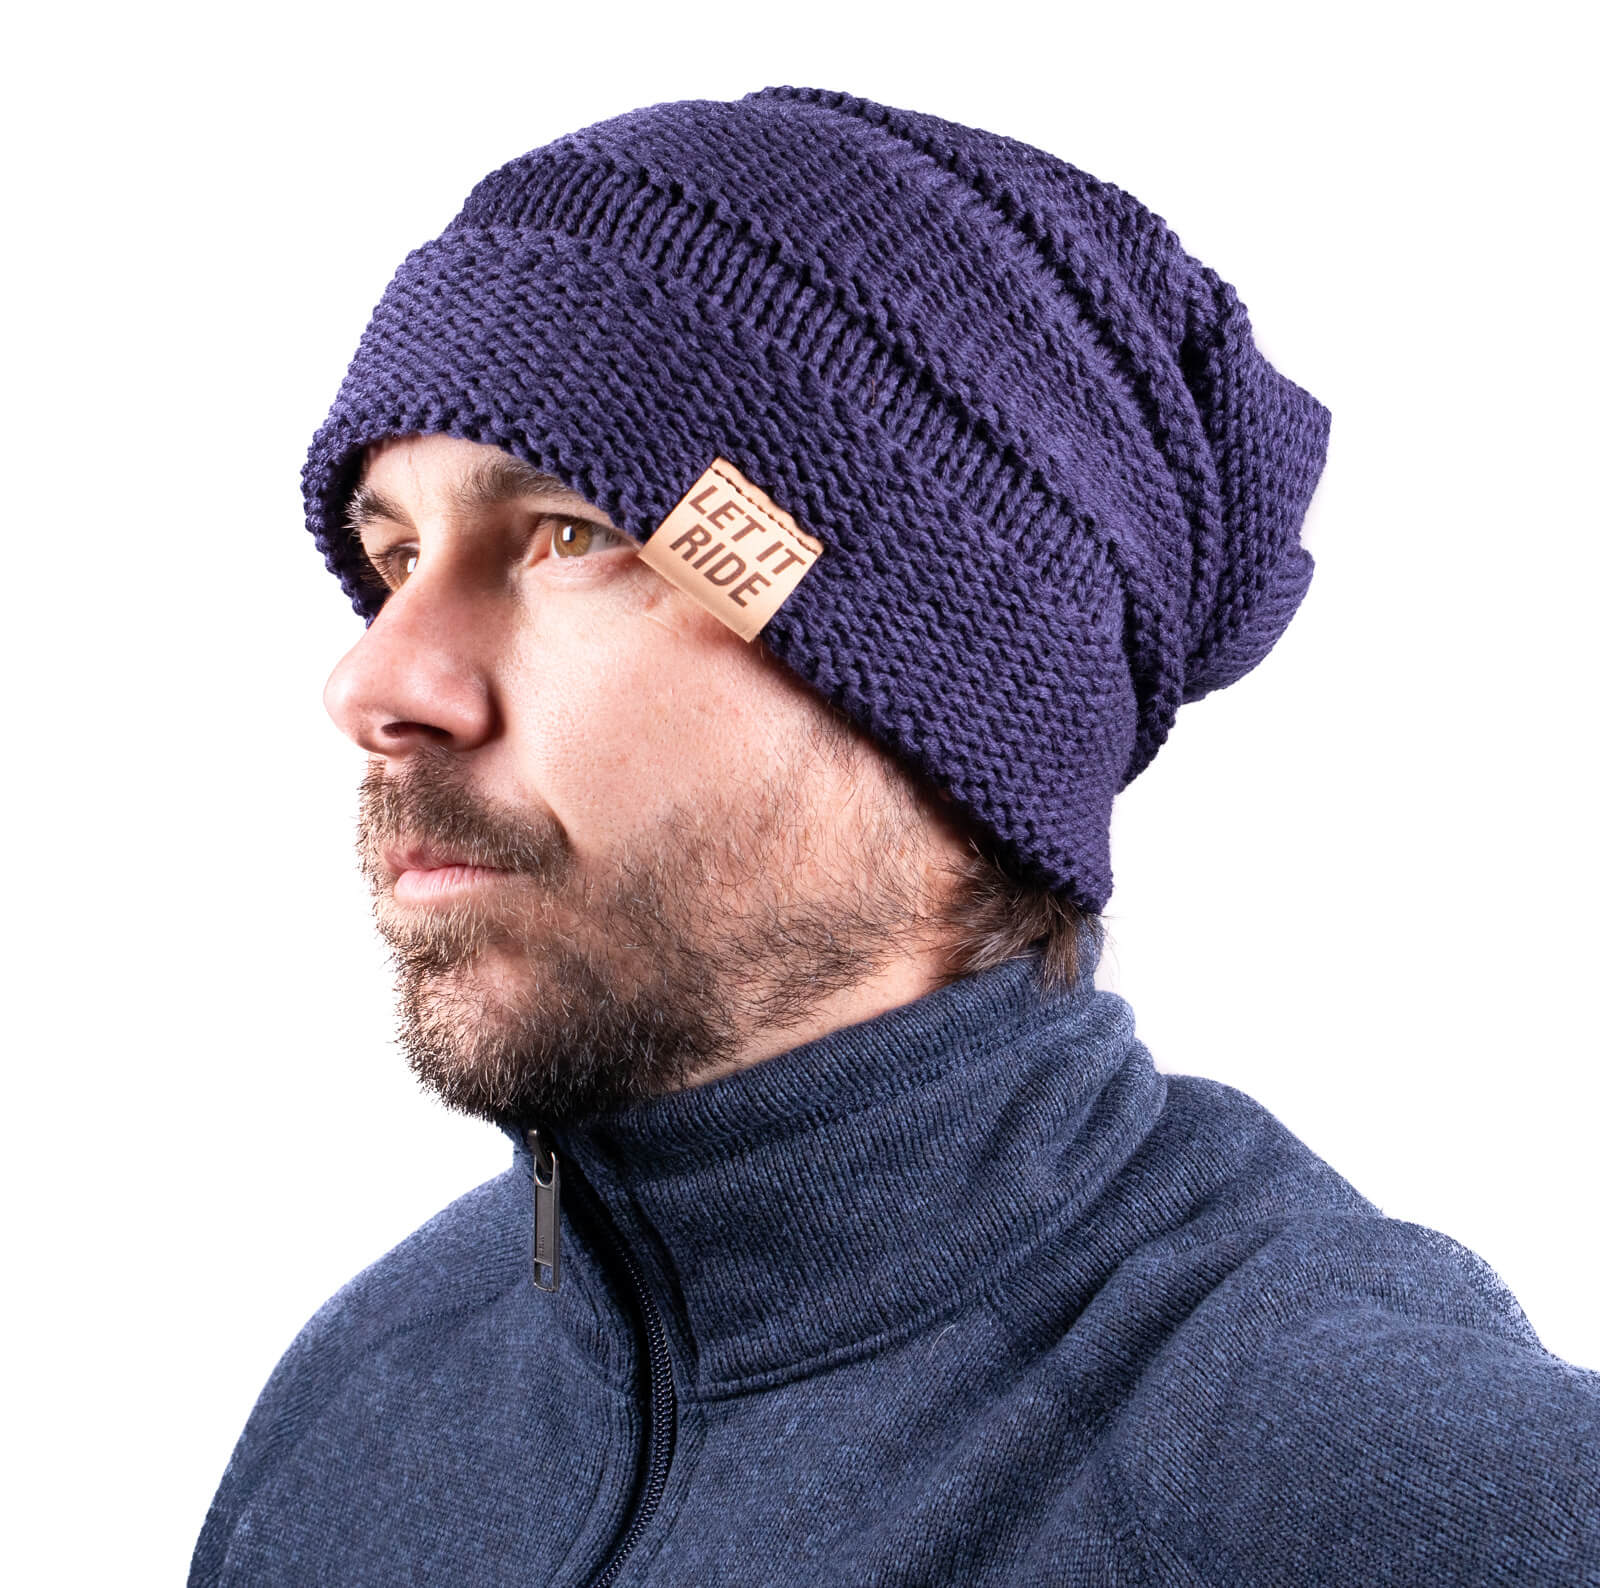 A beanie style for guys with long hair.